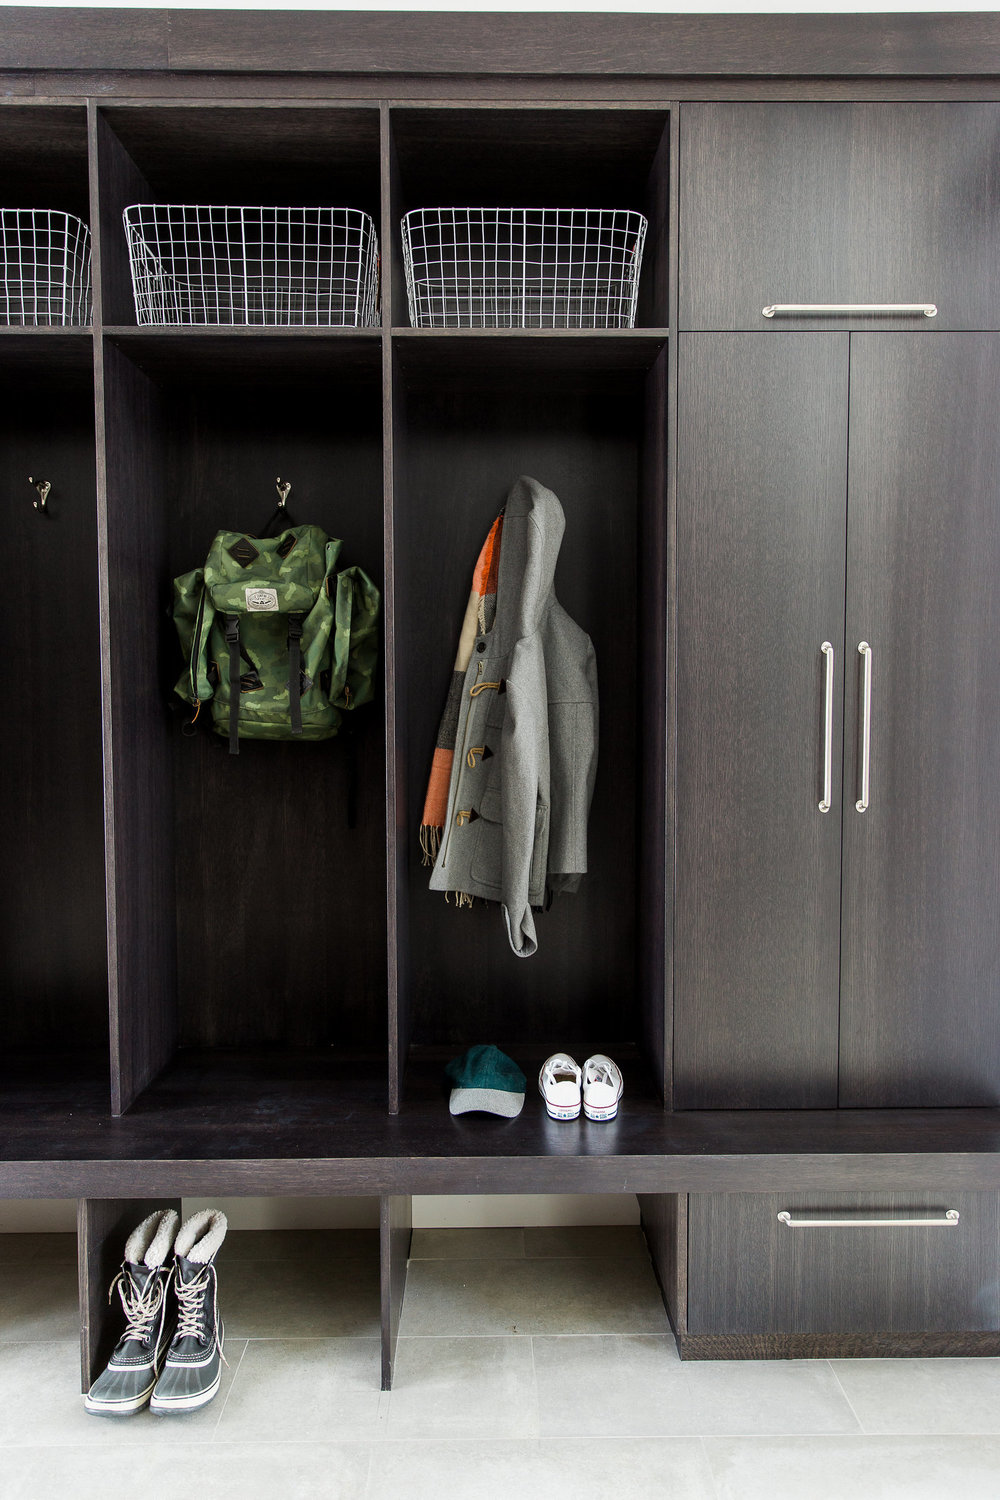 Backpacks and jackets hanging in mudroom